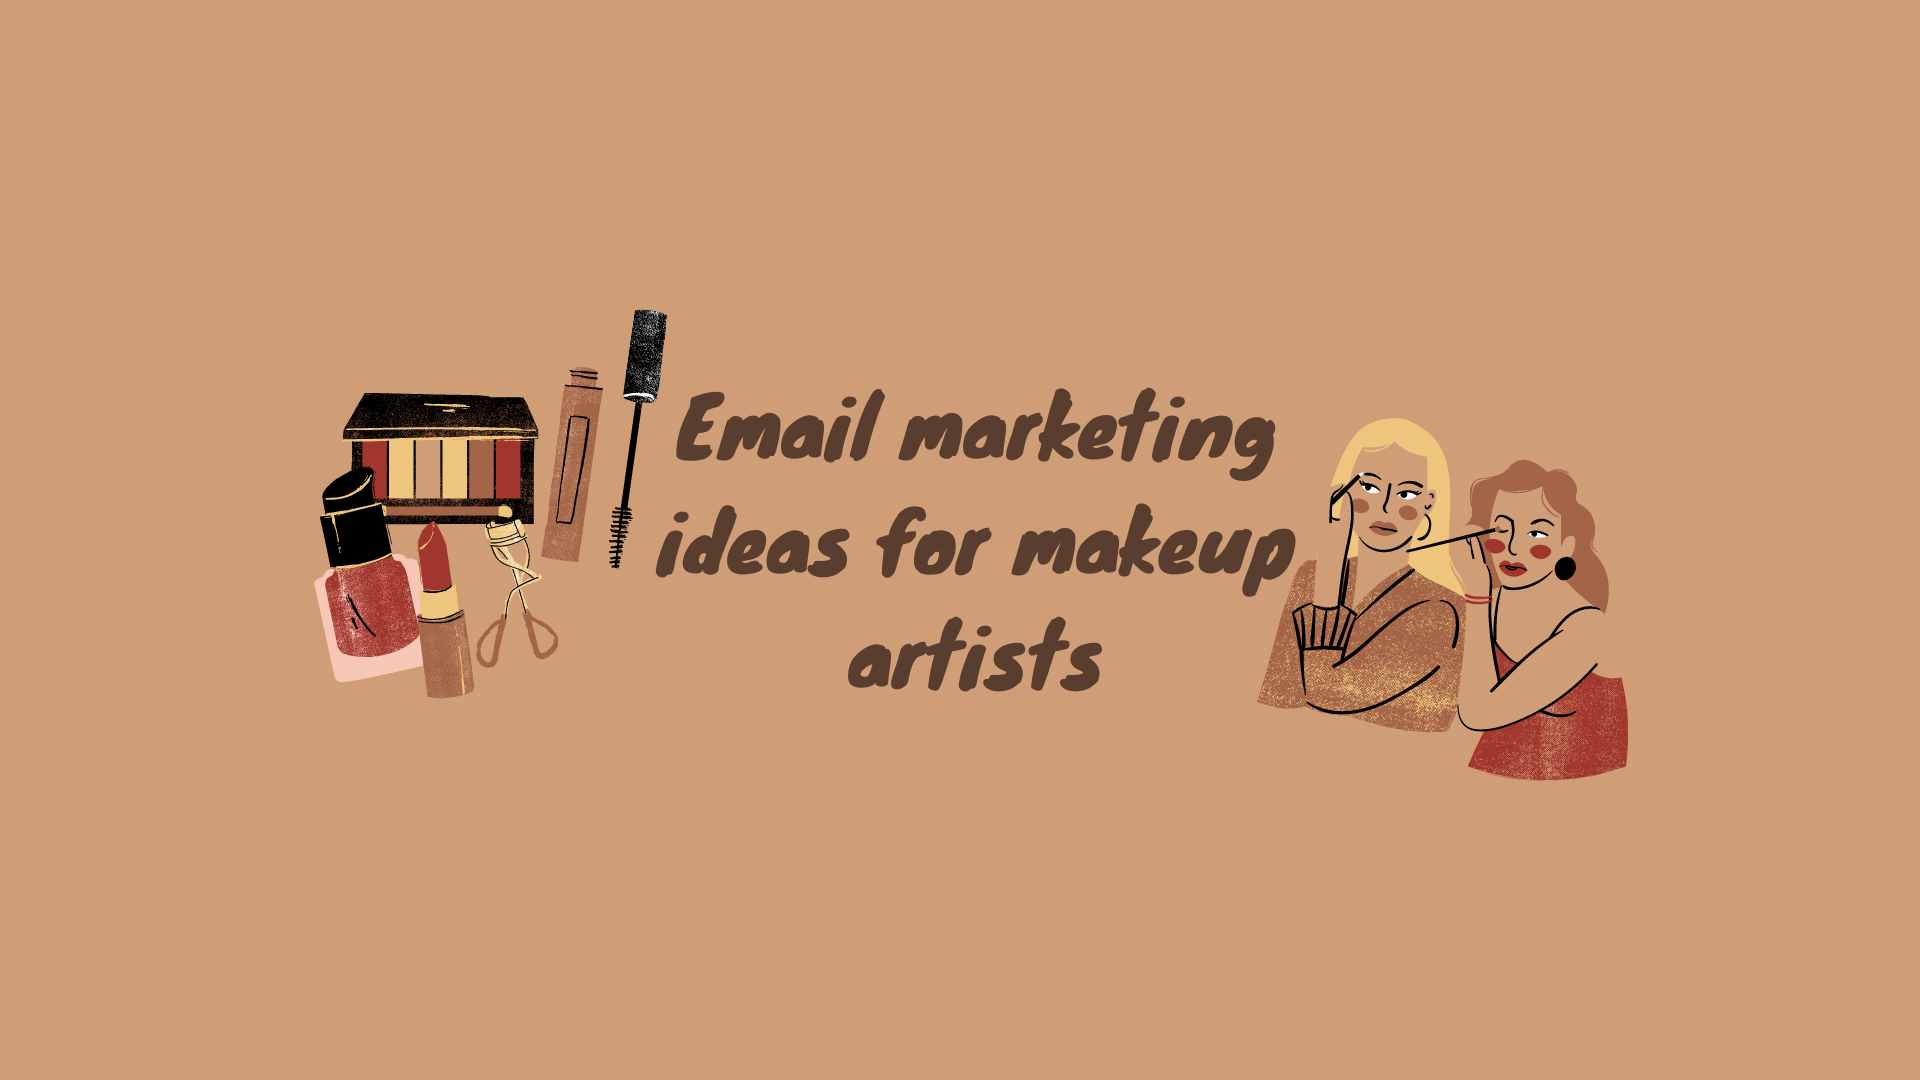 Email marketing ideas for makeup artists